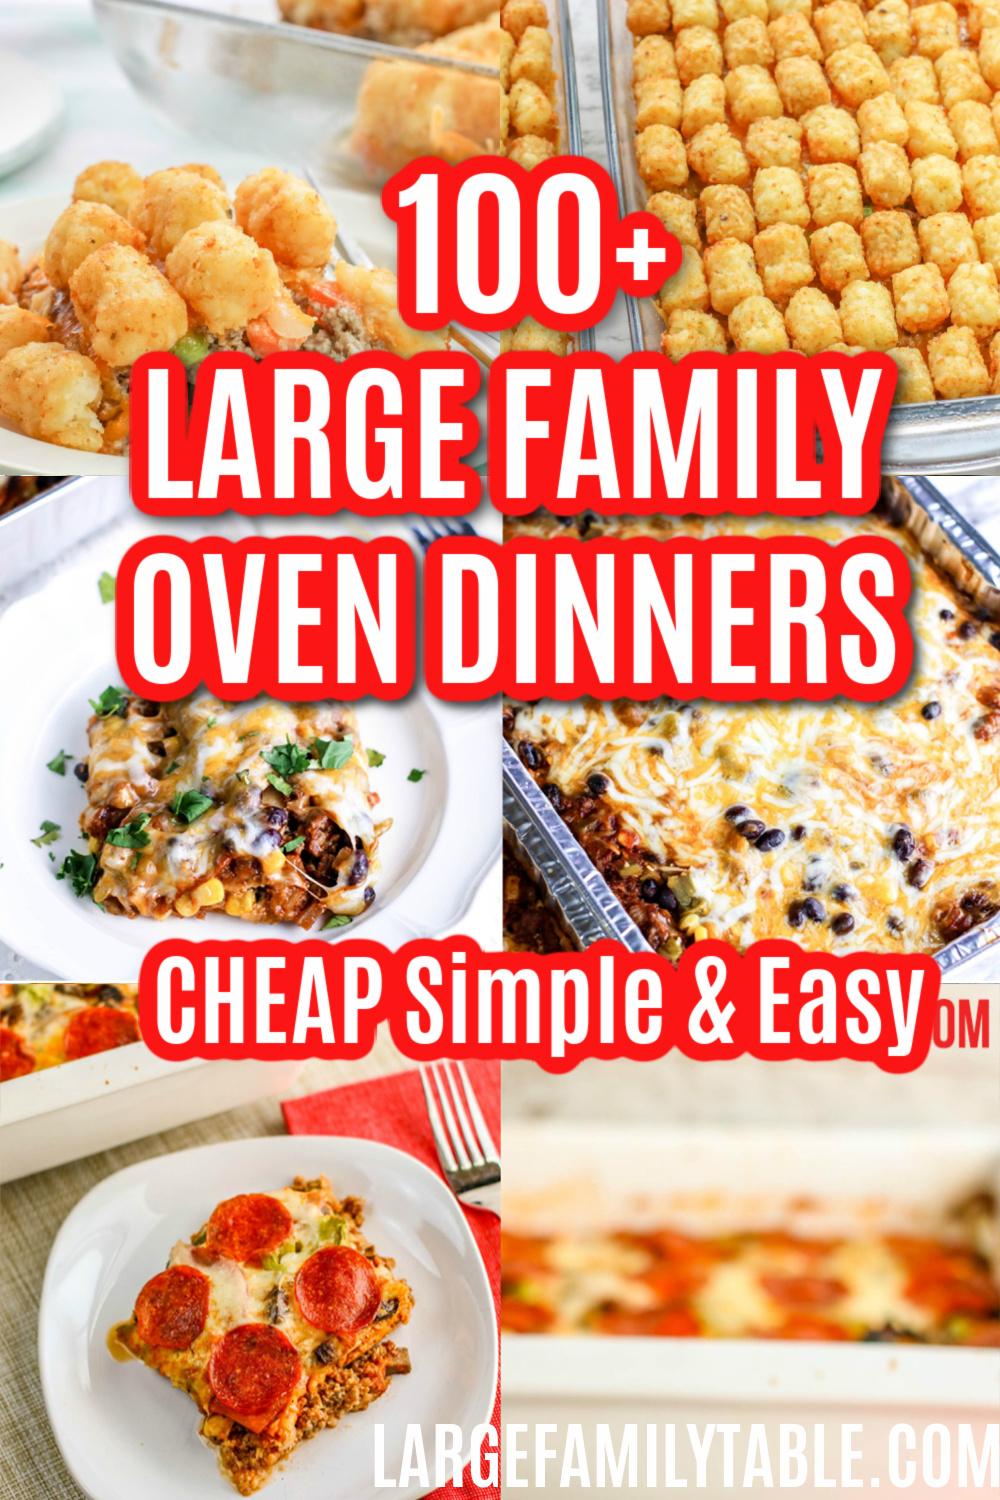 12+ 8+ Simple and Easy Large Family Oven Dinners   Large Family Table Galerie